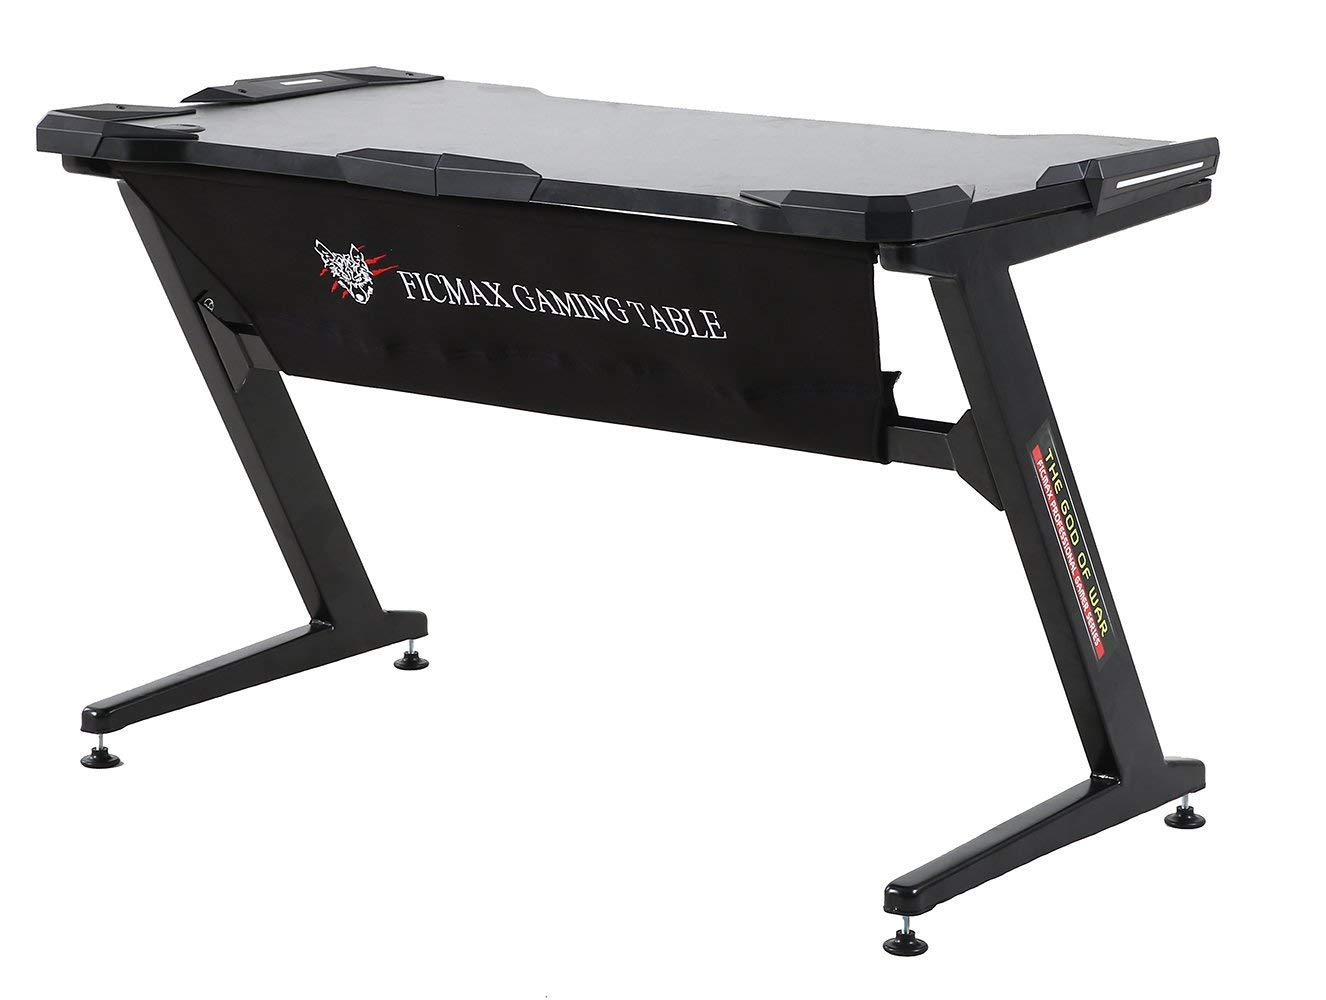 Ficmax Gaming Desk